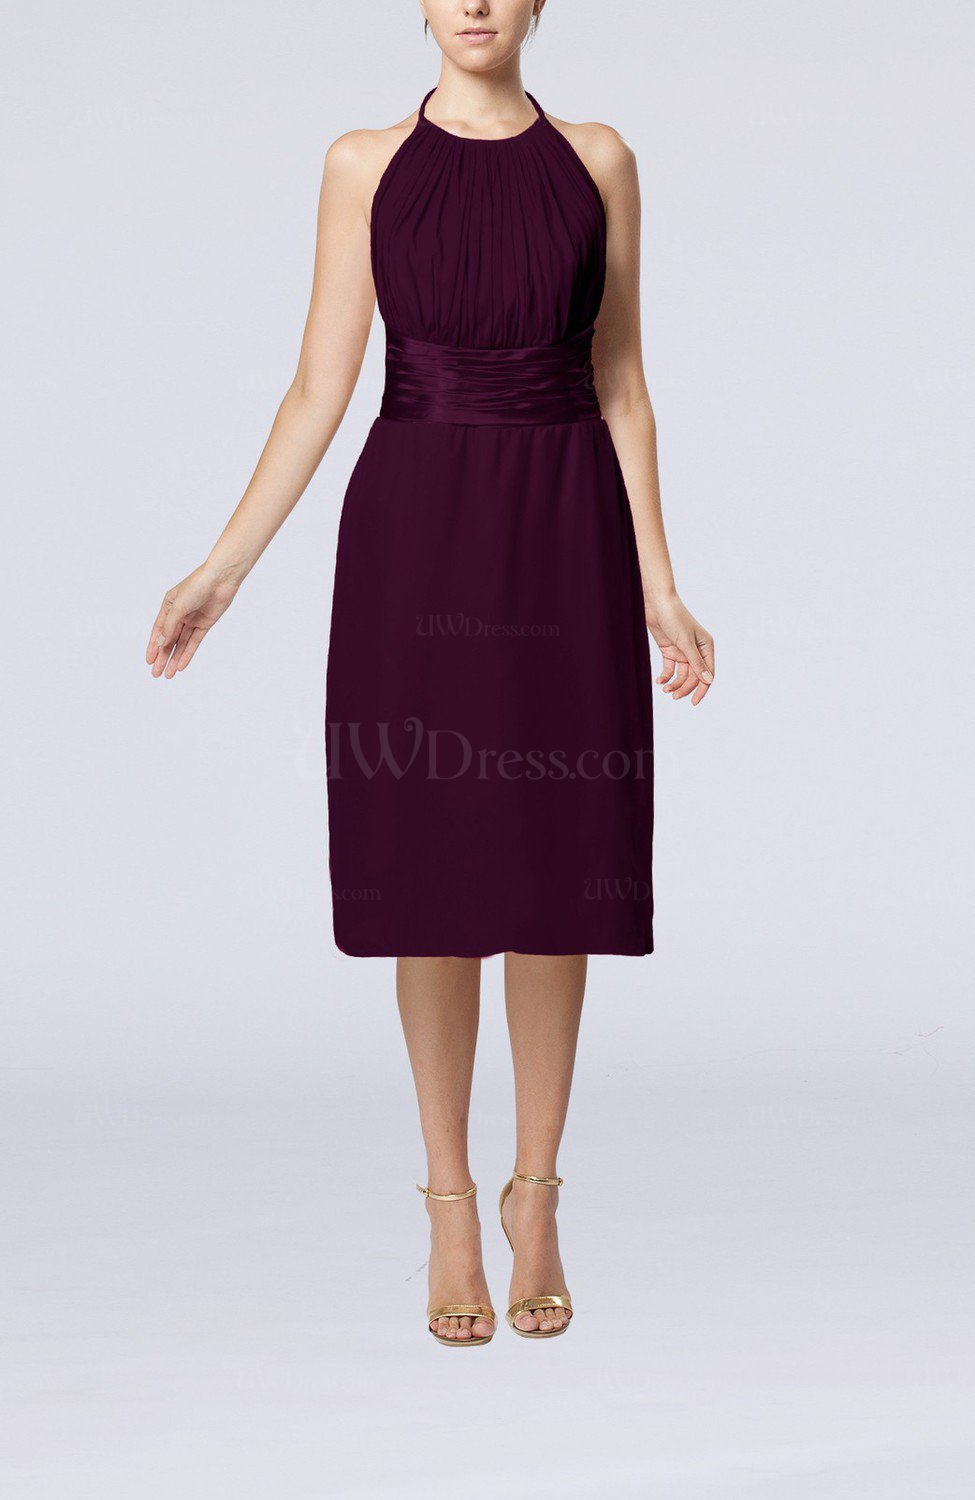 3f6c63fefd2 Plum Simple Halter Backless Chiffon Knee Length Cocktail Dresses (Style  D11021)